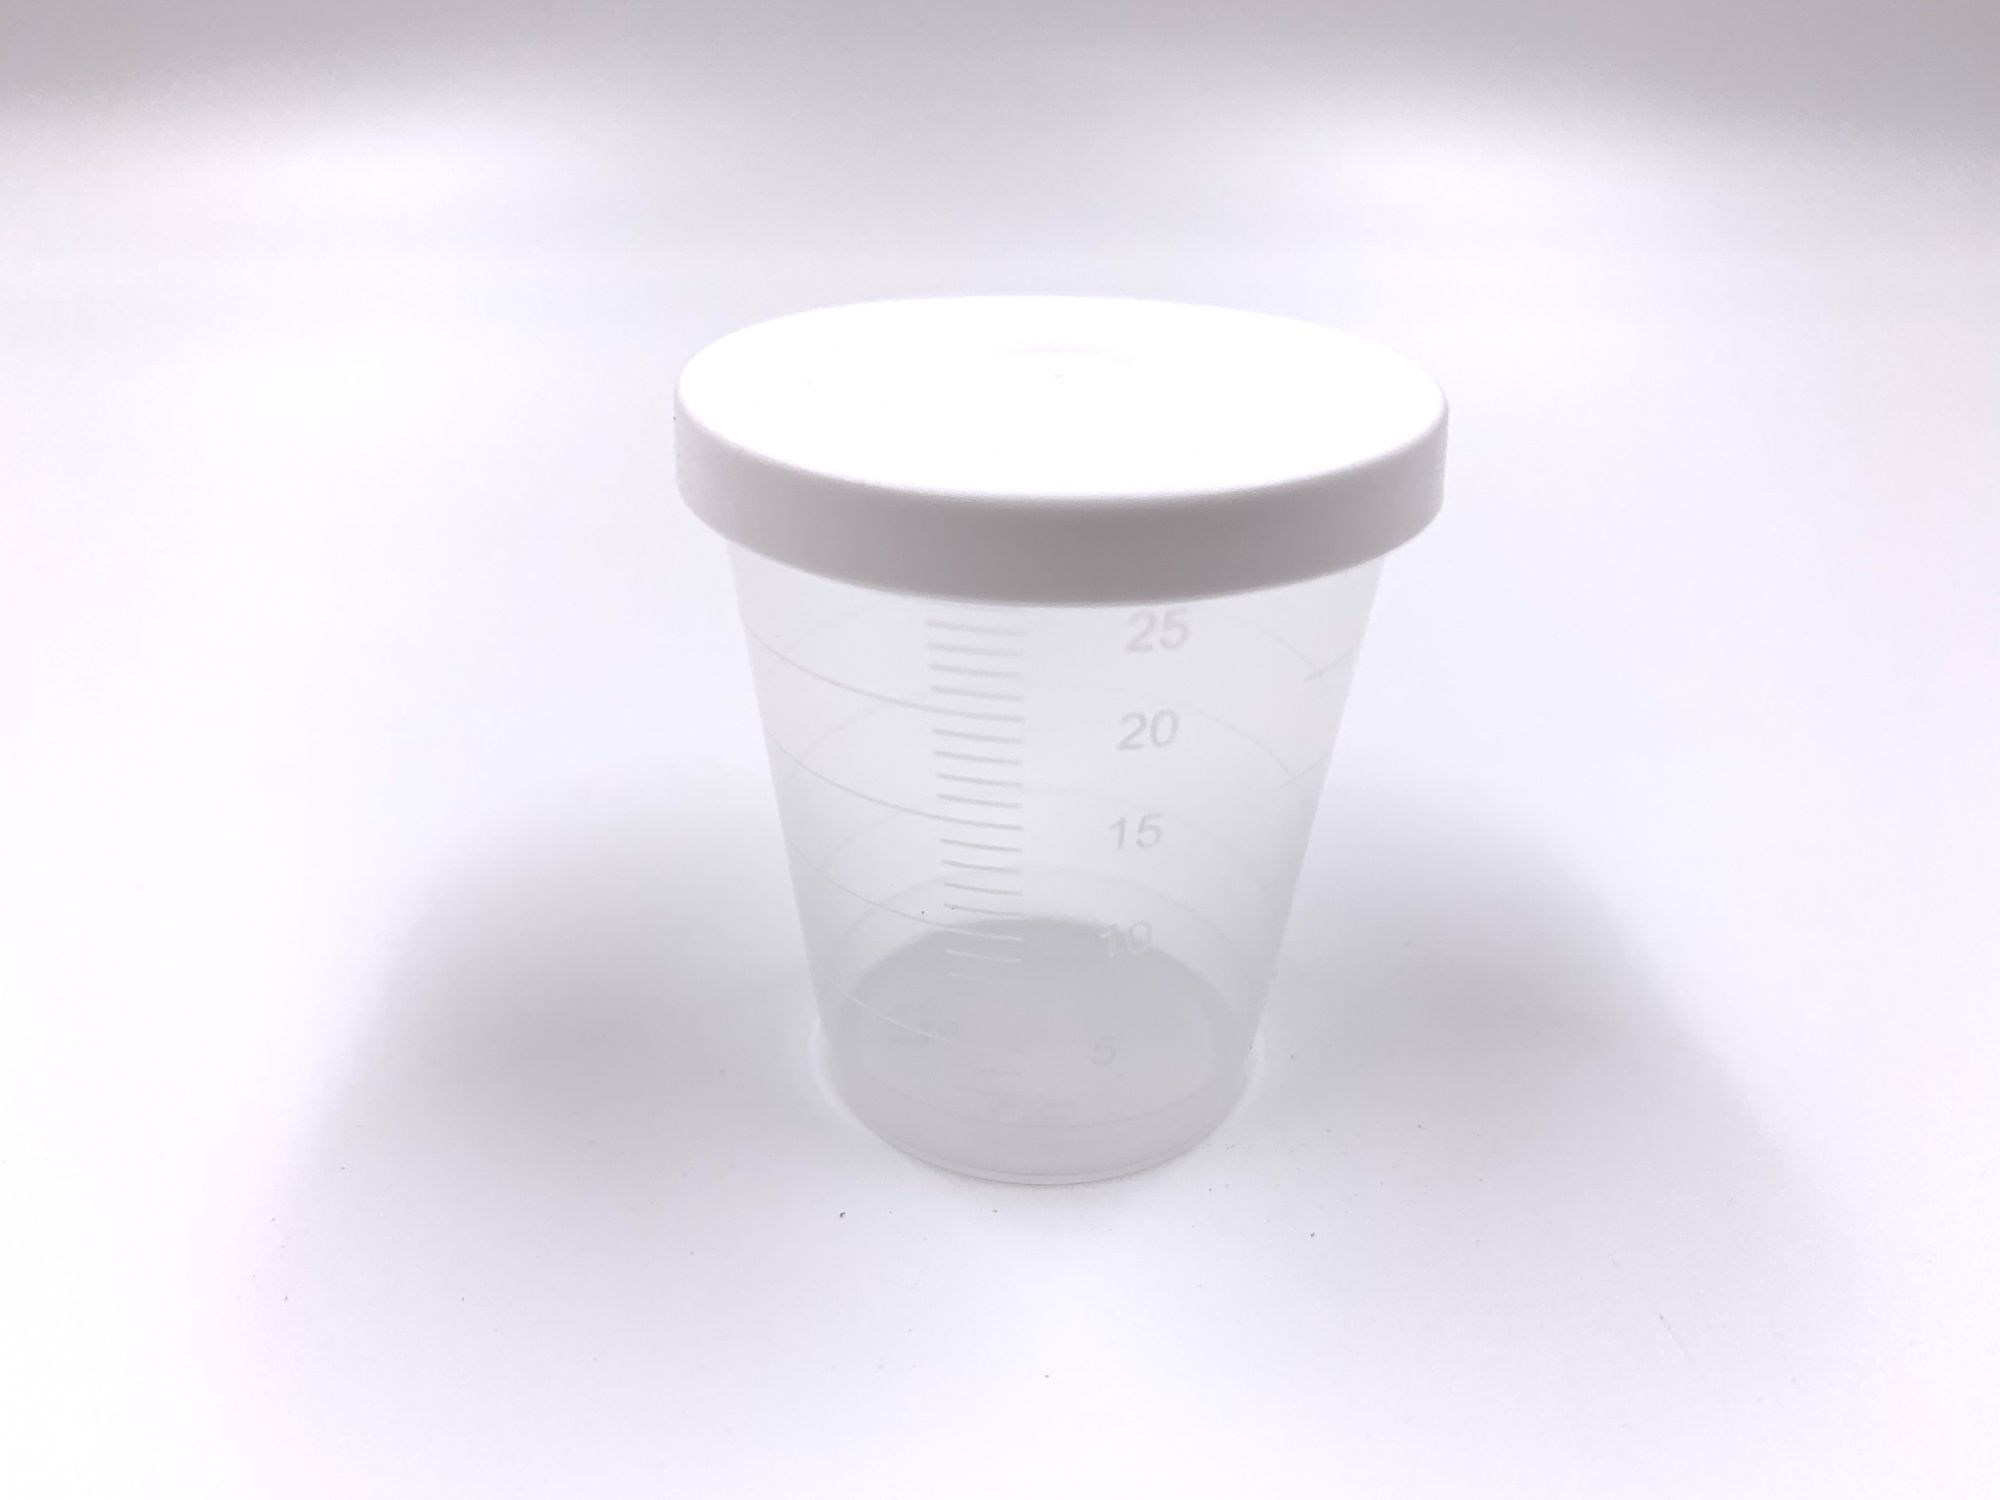 cups with lid for eg nucleo counter per 75pieces